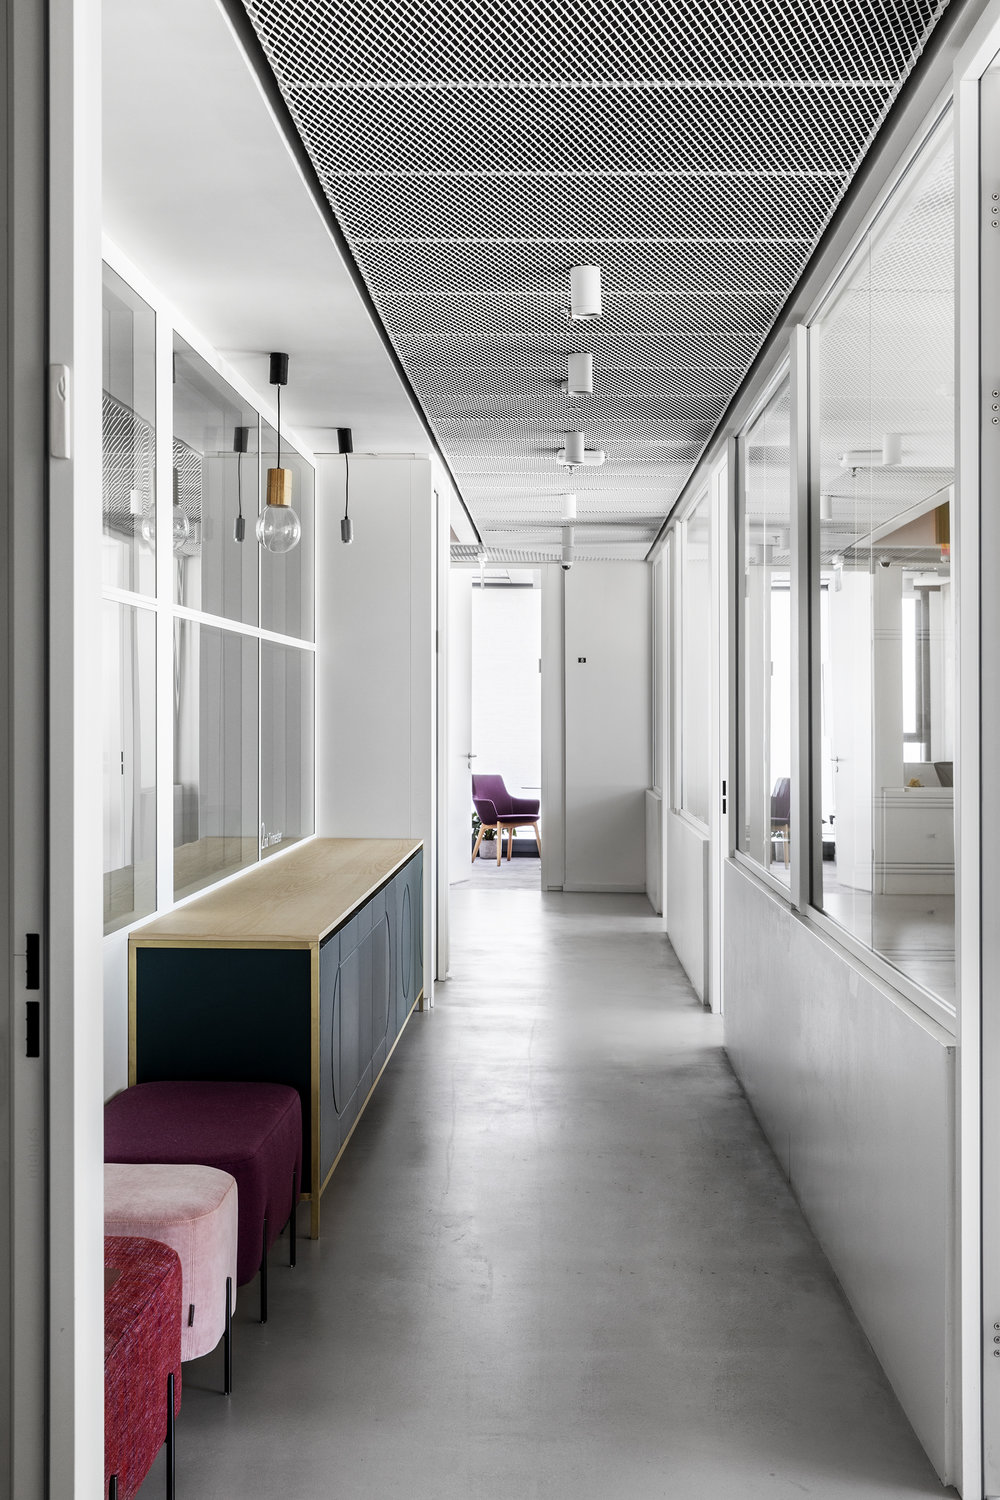 038_סטודיו רואי דוד - ROY DAVID ARCHITECTURE - NUVO OFFICES.jpg